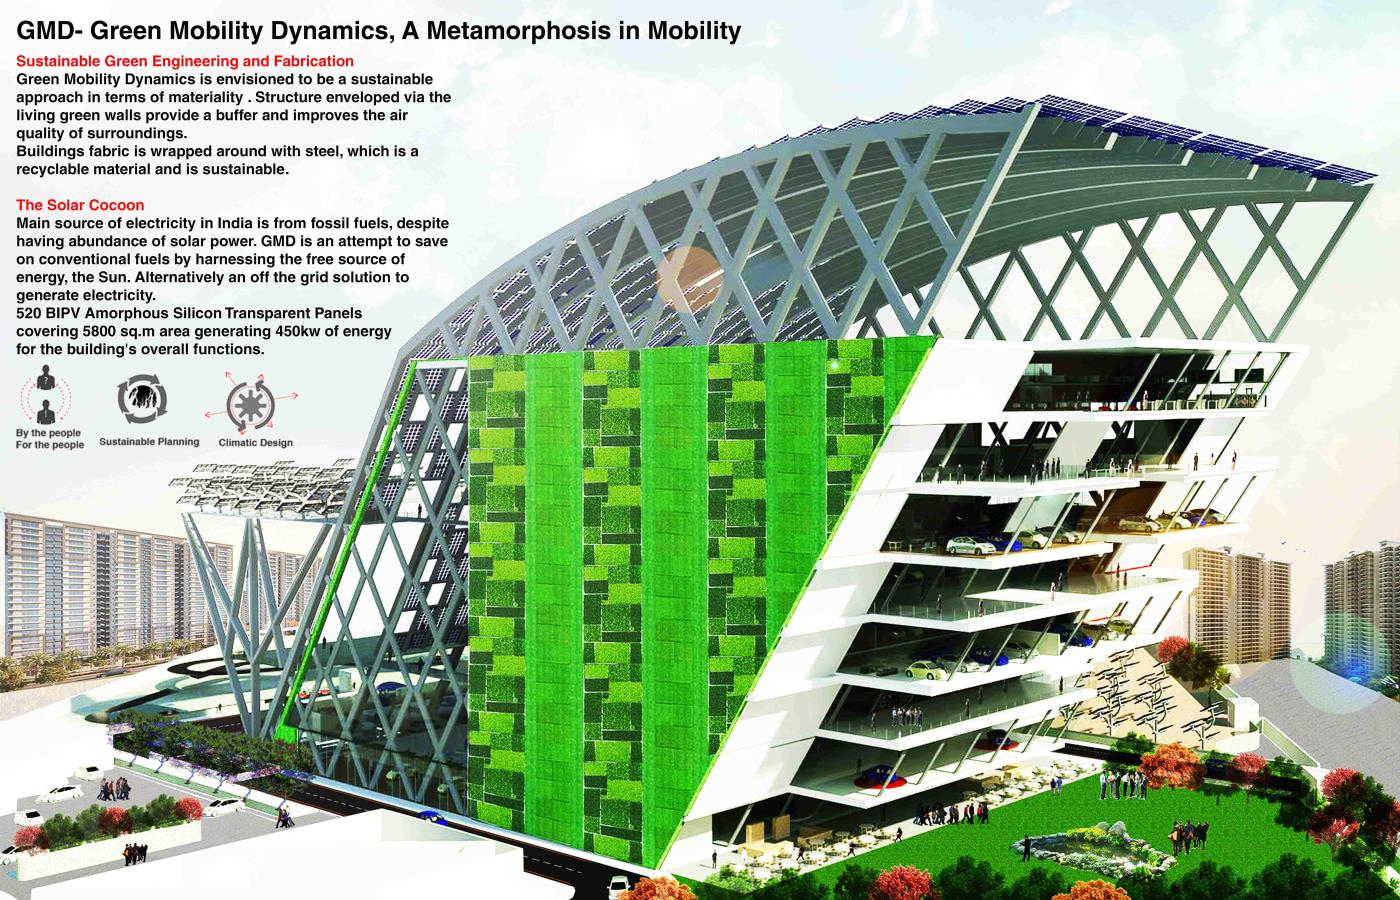 Presidents Medals Gmd Green Mobility Dynamics A